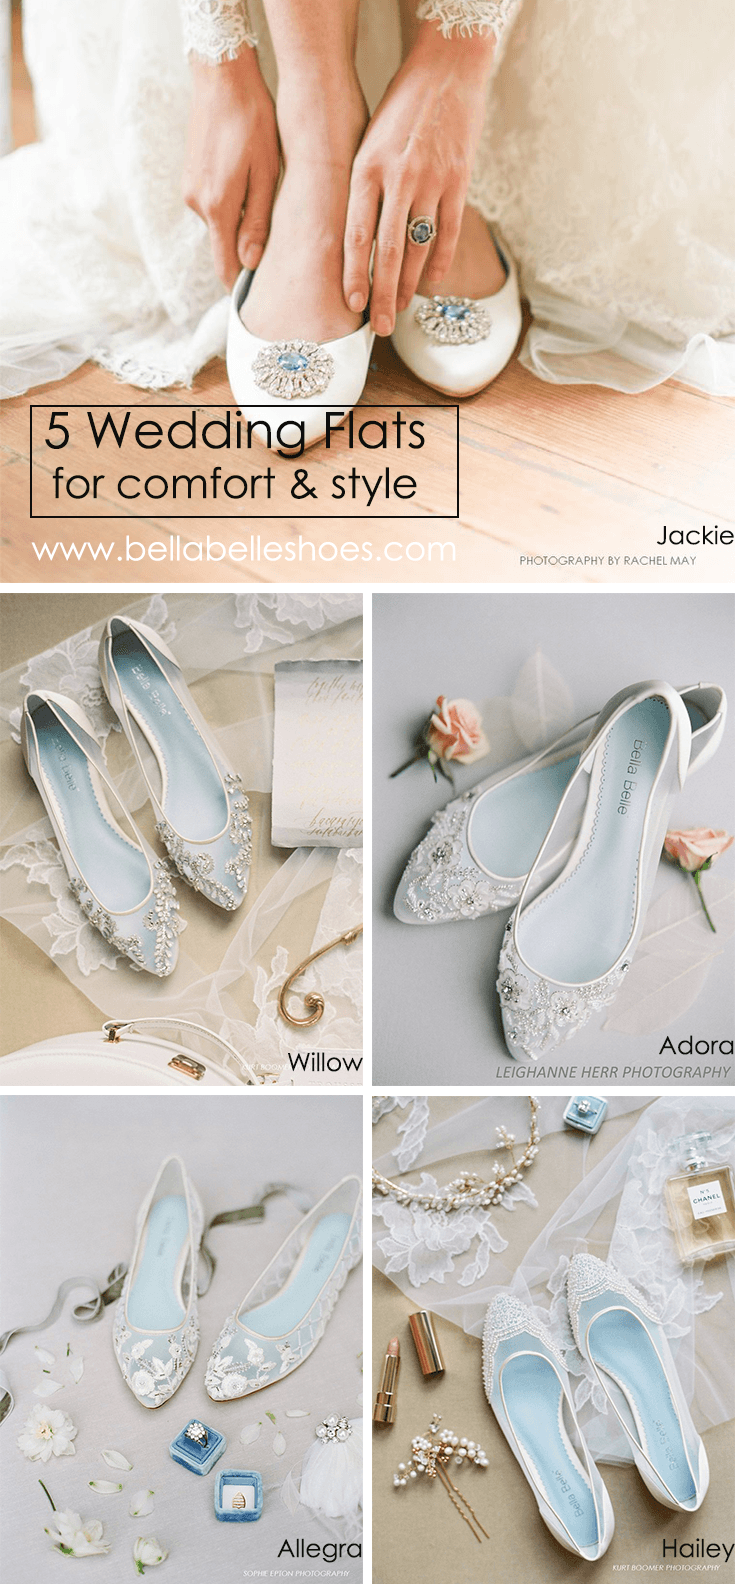 0d8c6a819 For brides who seek comfort without sacrificing style, Bella Belle Wedding  Flats are demure with beaded crystals and jewels, floral patterns, ...